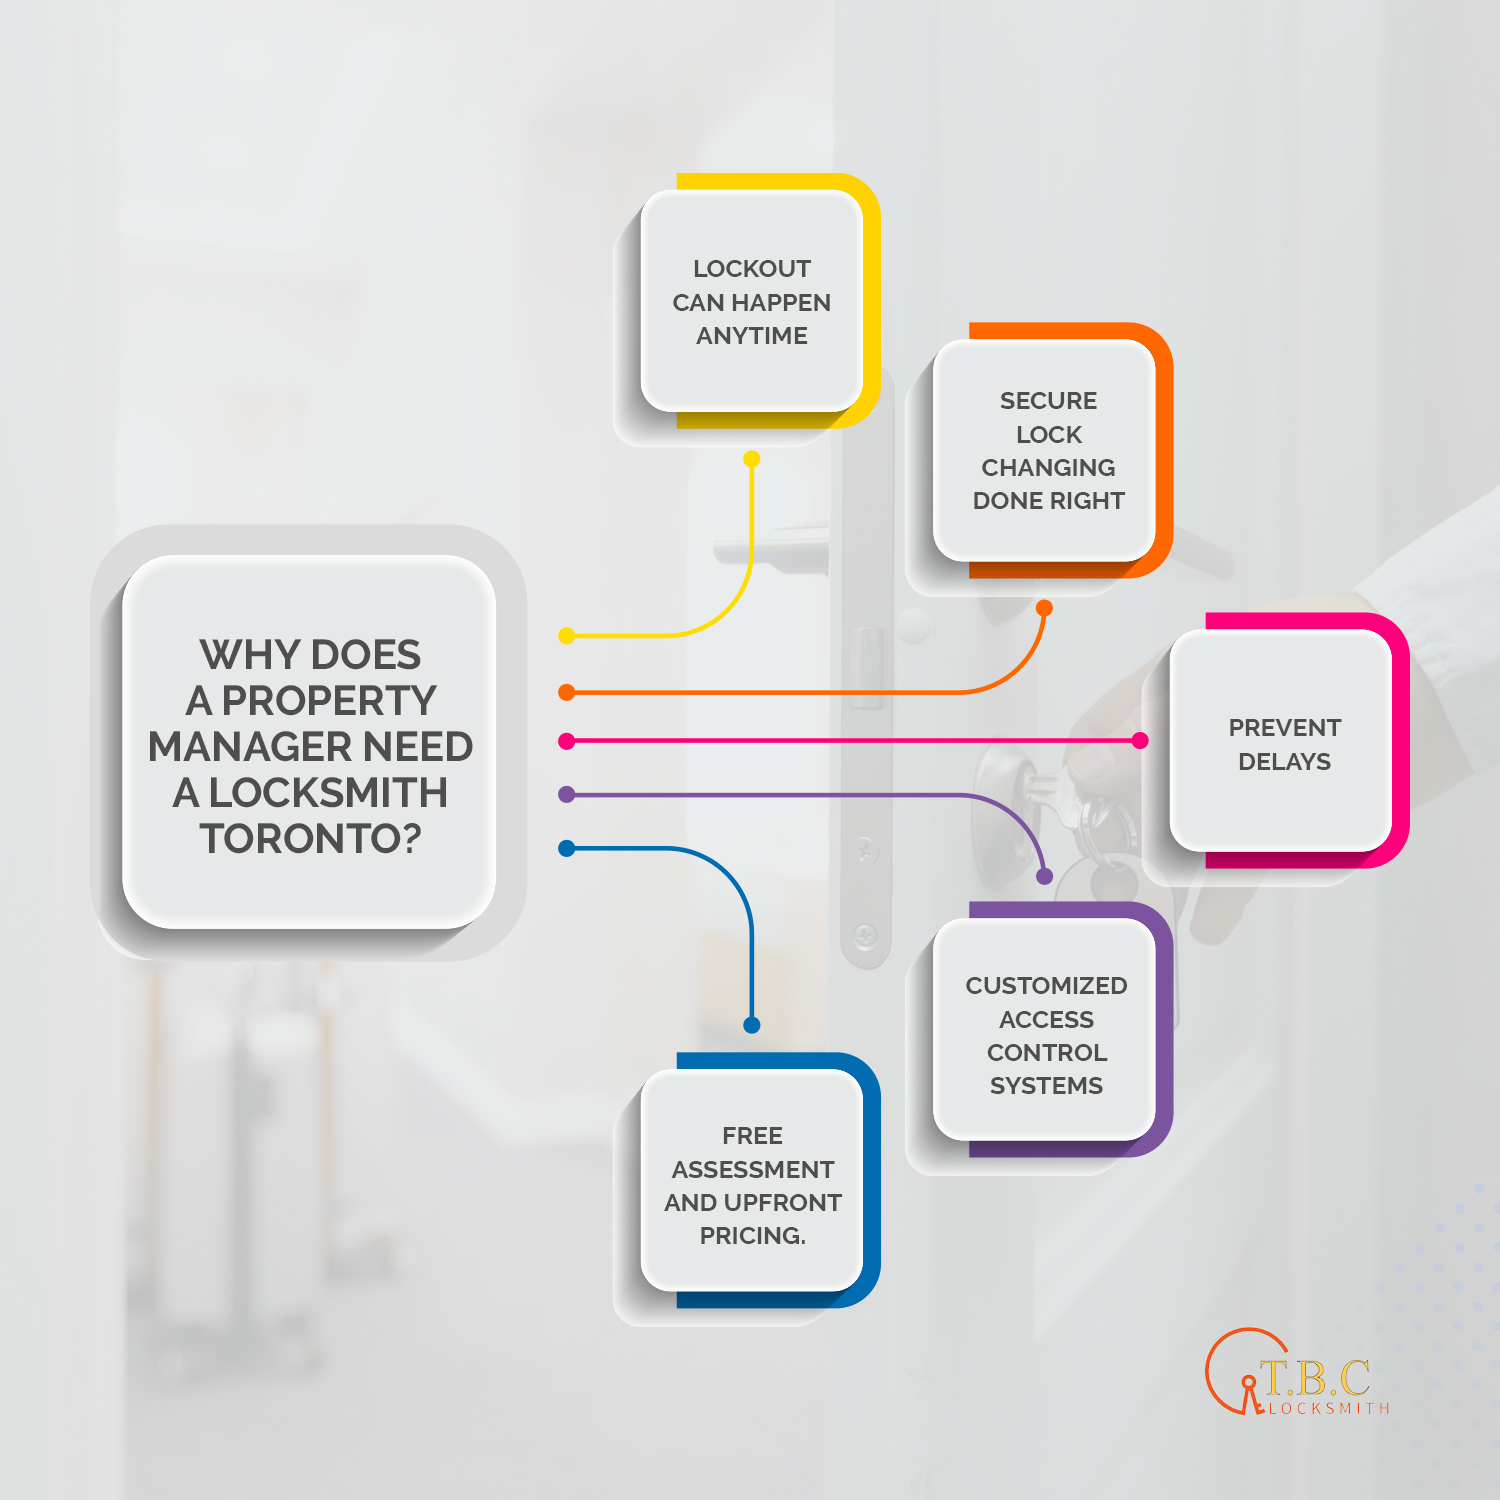 Why Does a Property Manager Need a Locksmith Toronto